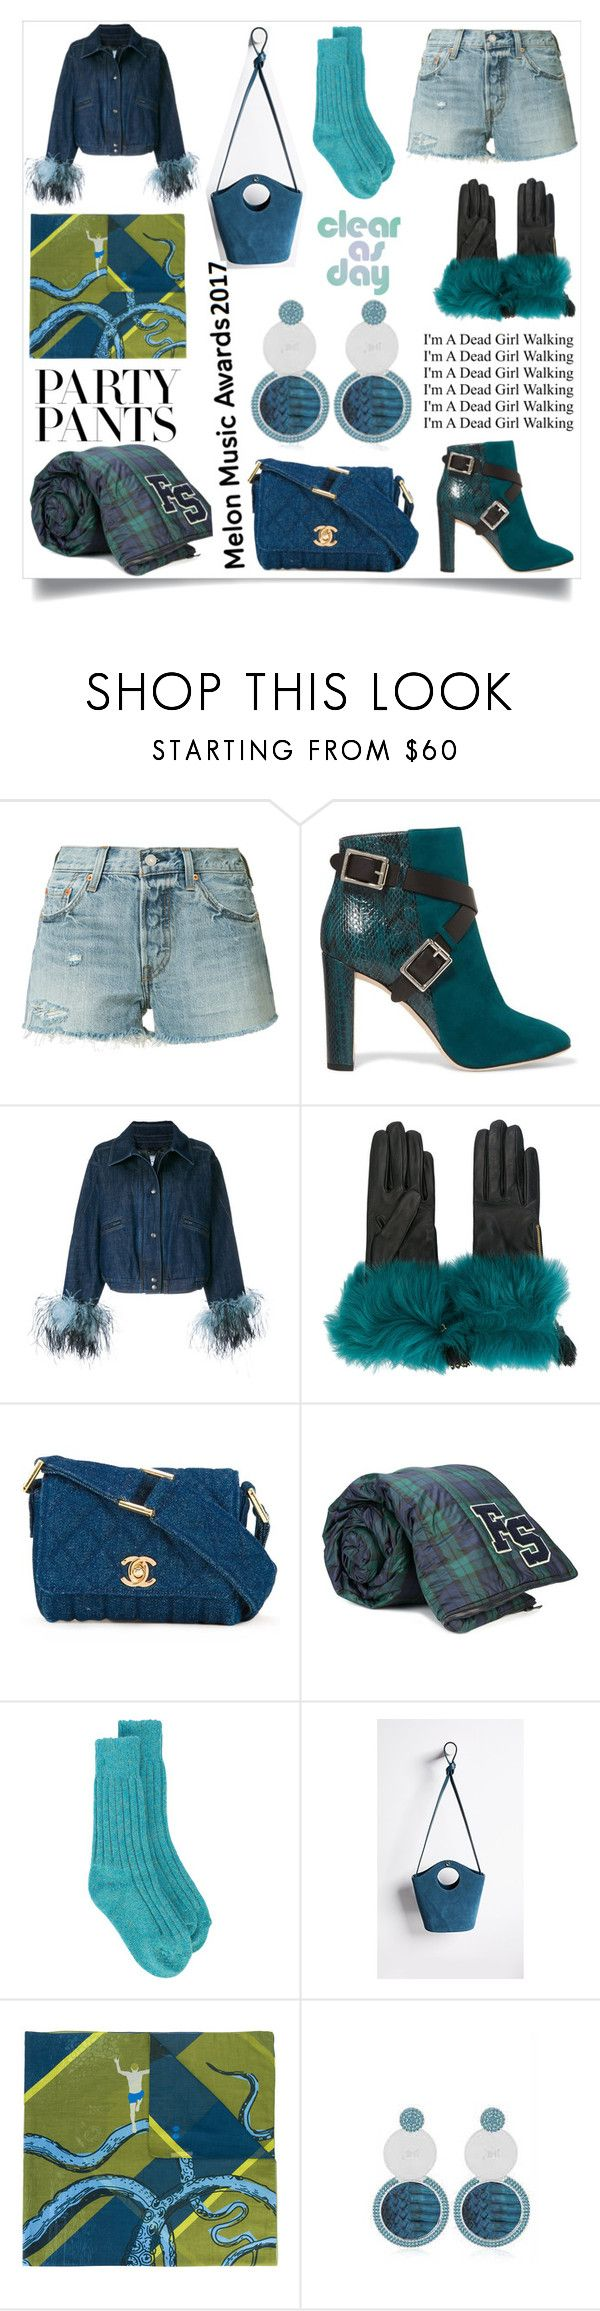 """Remember me"" by emmamegan-5678 ❤ liked on Polyvore featuring Levi's, Jimmy Choo, Prada, Chanel, Puma, The Elder Statesman, Elizabeth and James, Odeeh and modern"